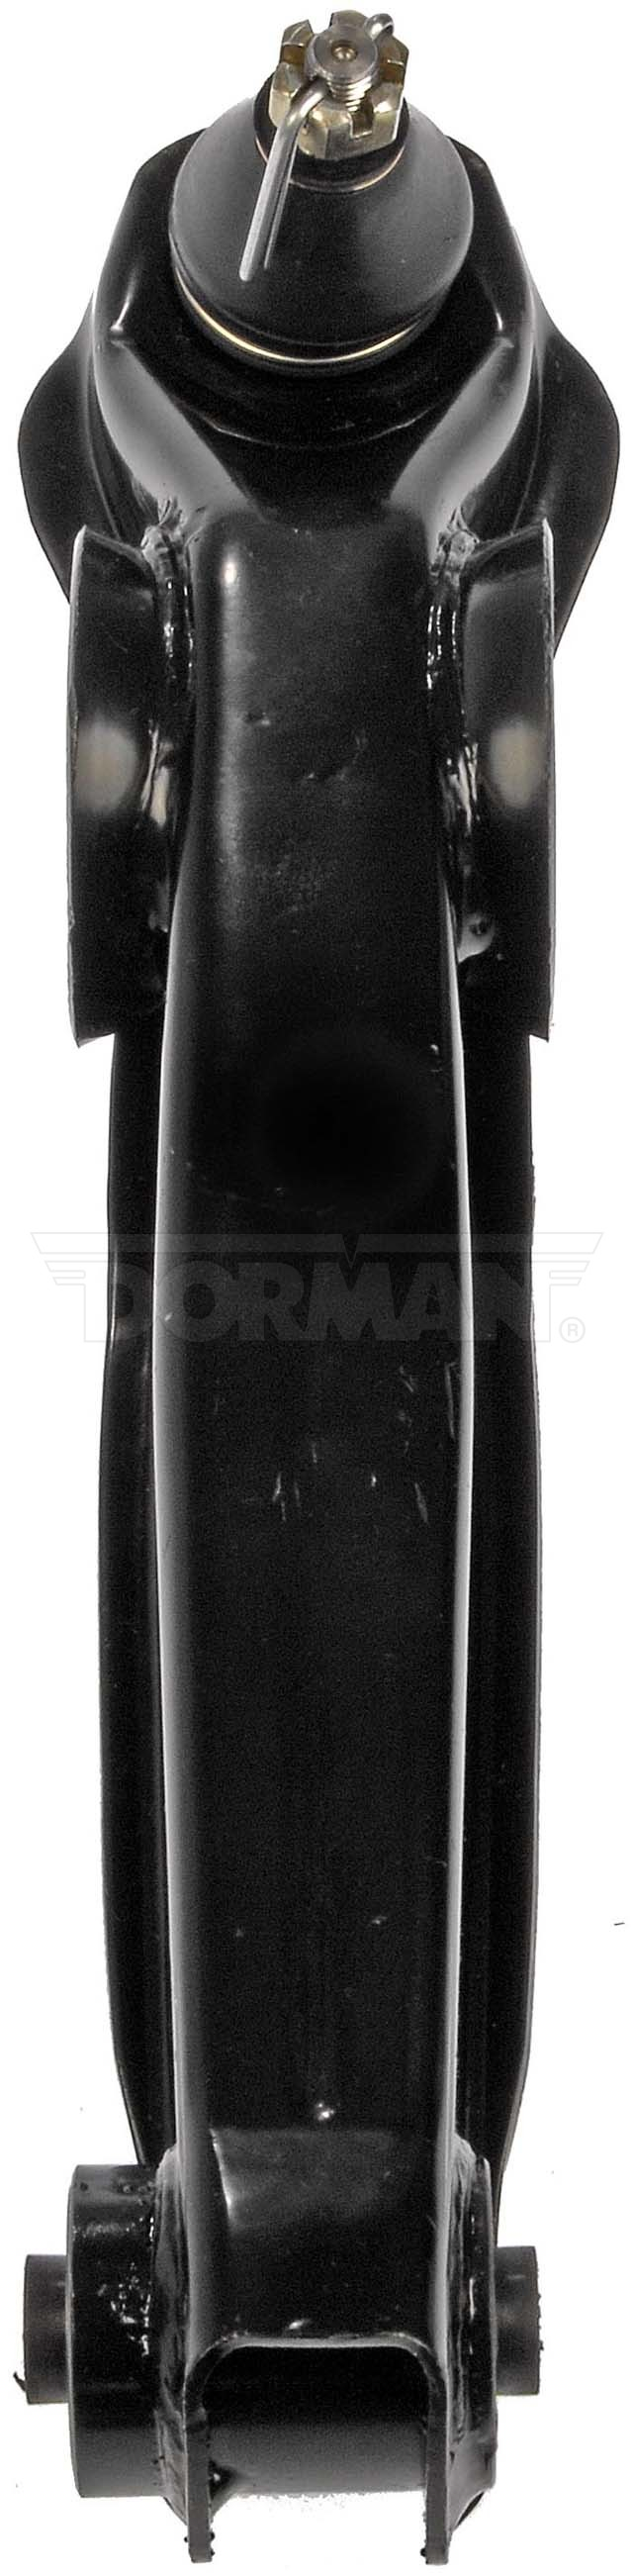 Dorman # 520-690 Suspension Control Arm and Ball Joint Assembly